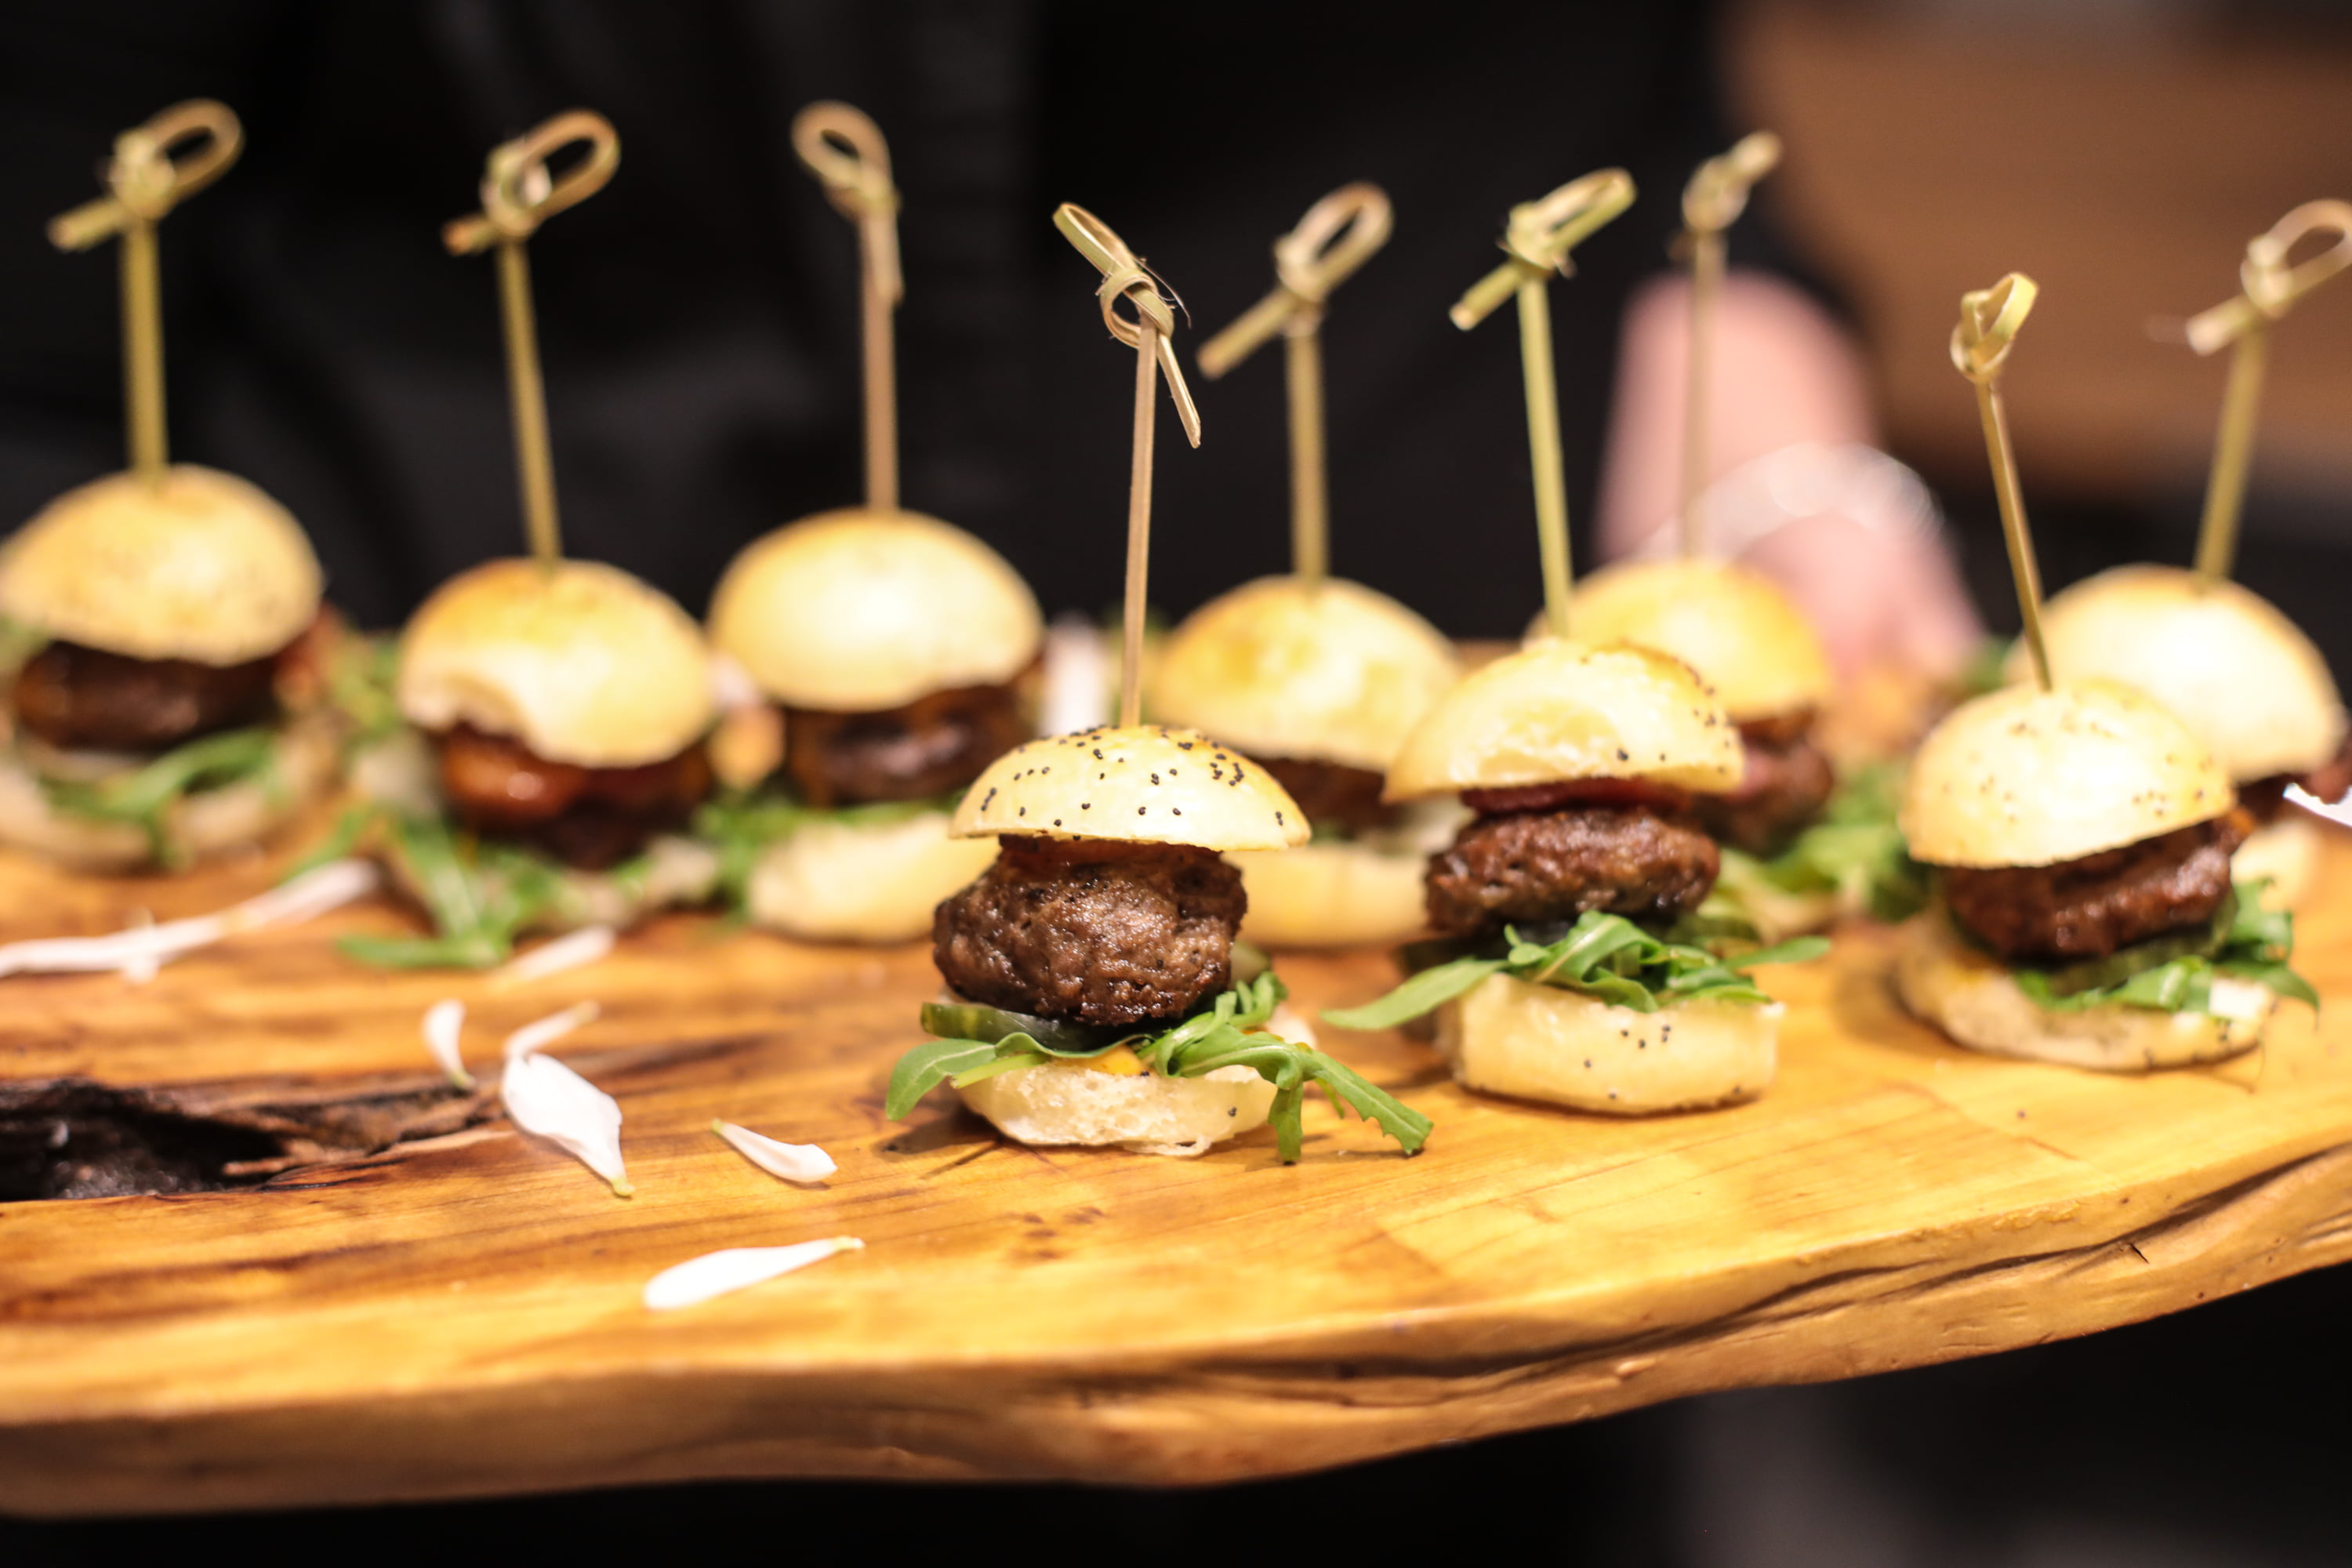 Mini-burgers with Airbnb